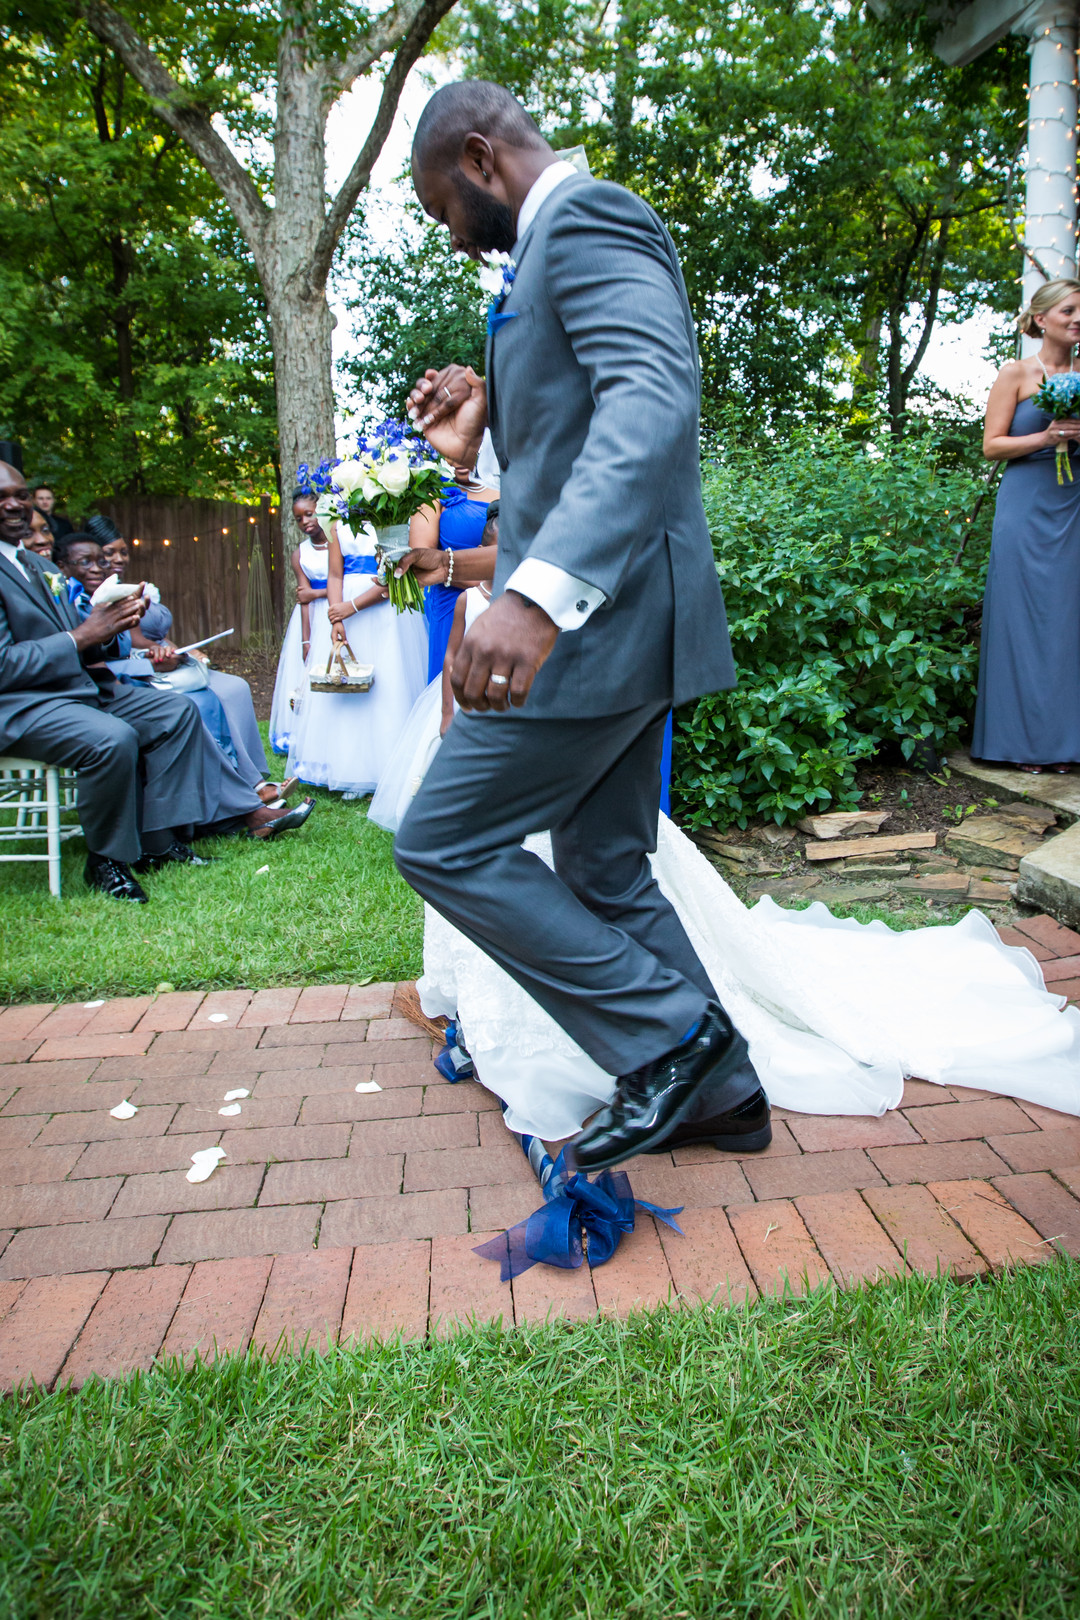 Wilson_Dunbar_PalmettoDuo_B34C4277_big Outdoor Southern Nuptials in Lexington, SC